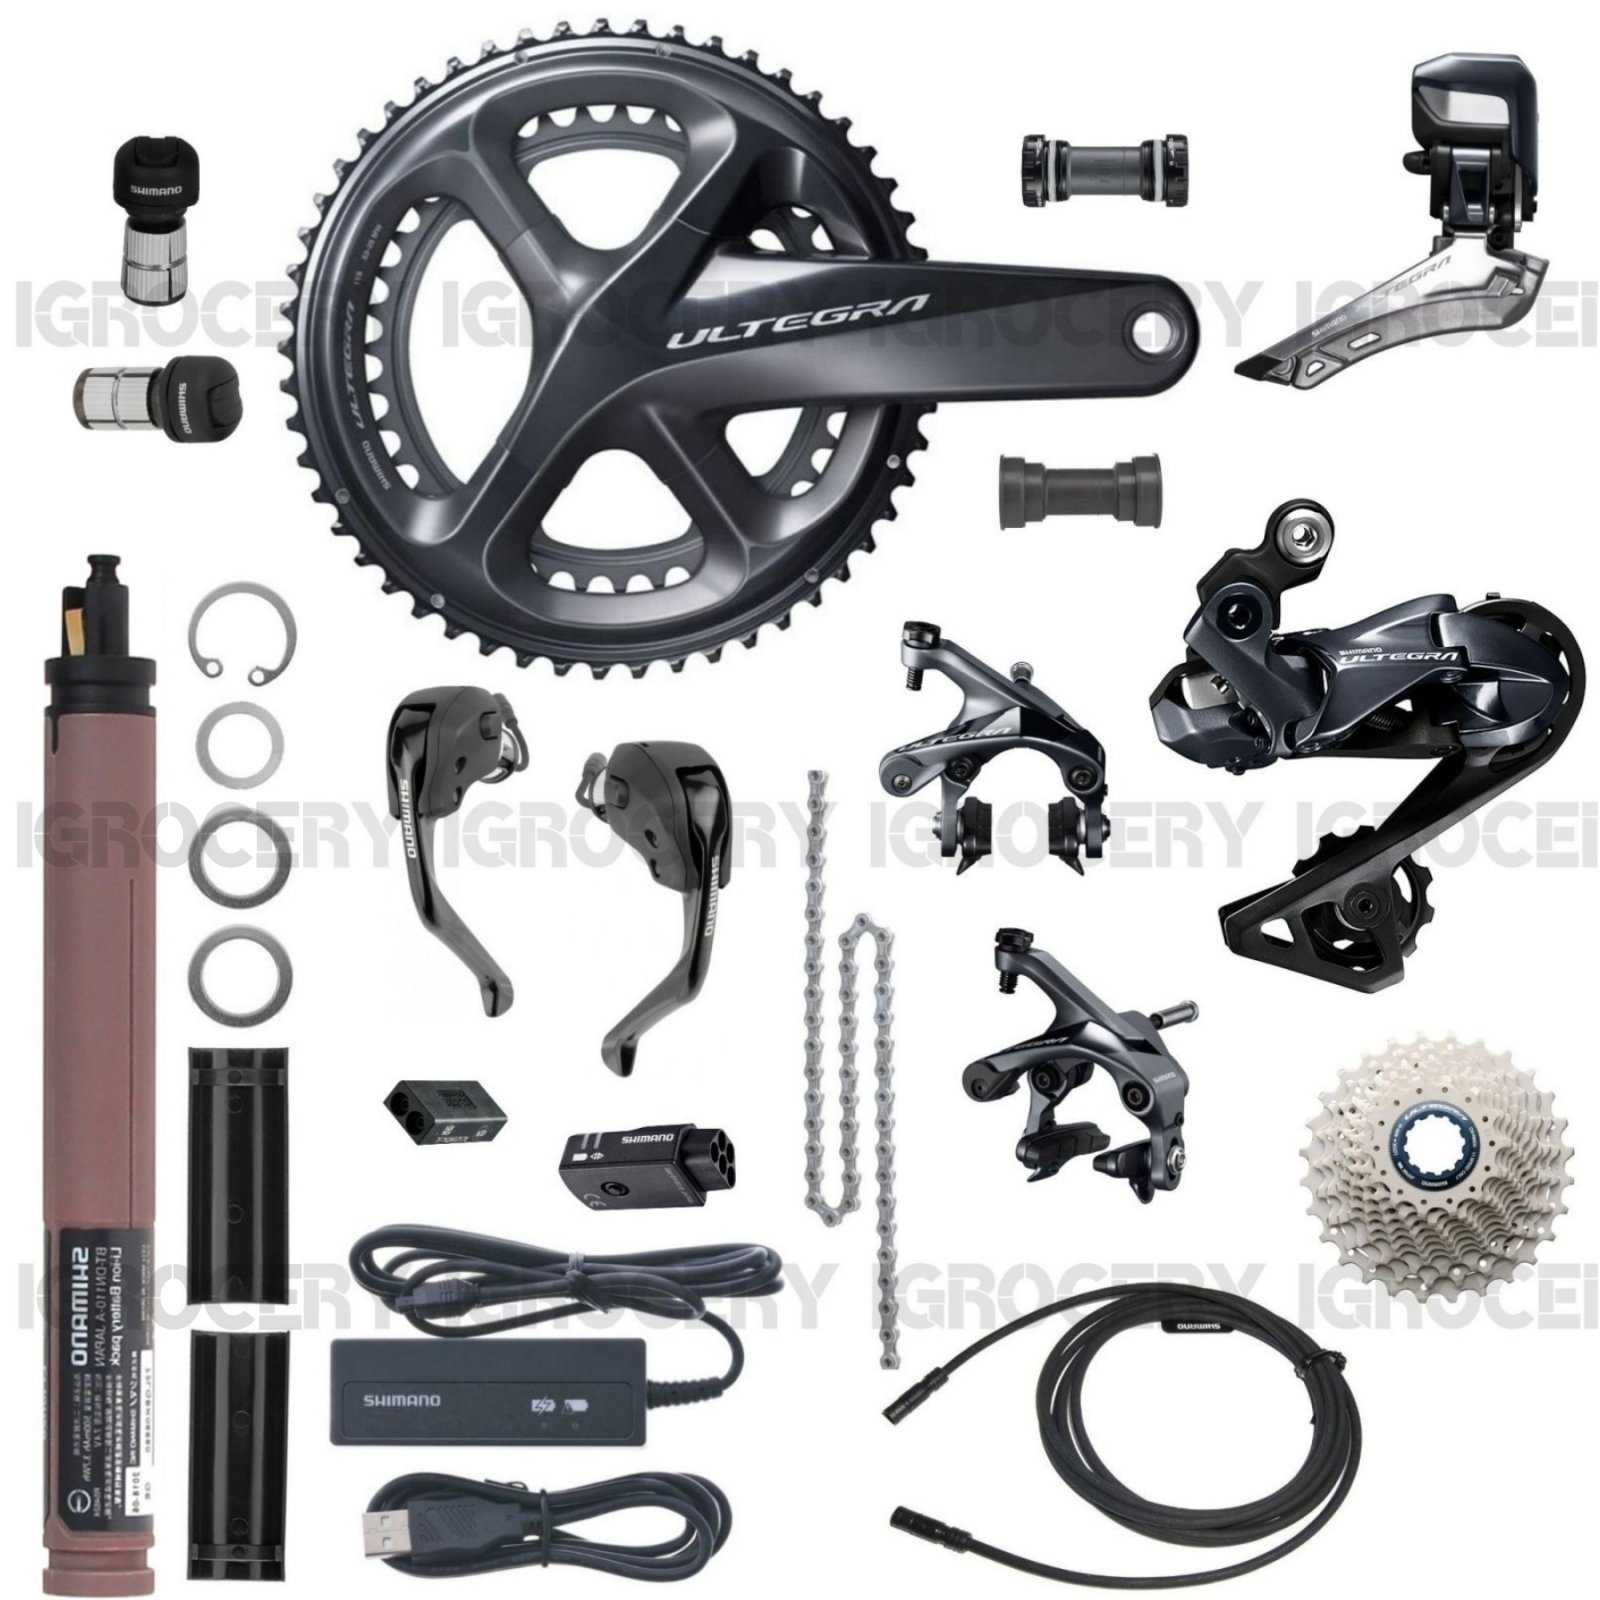 6865d79a6fc Details about Shimano Ultegra R8060 DI2 T&T trial Upgrade GroupSet 172.5mm  w/ SW-R9160 New